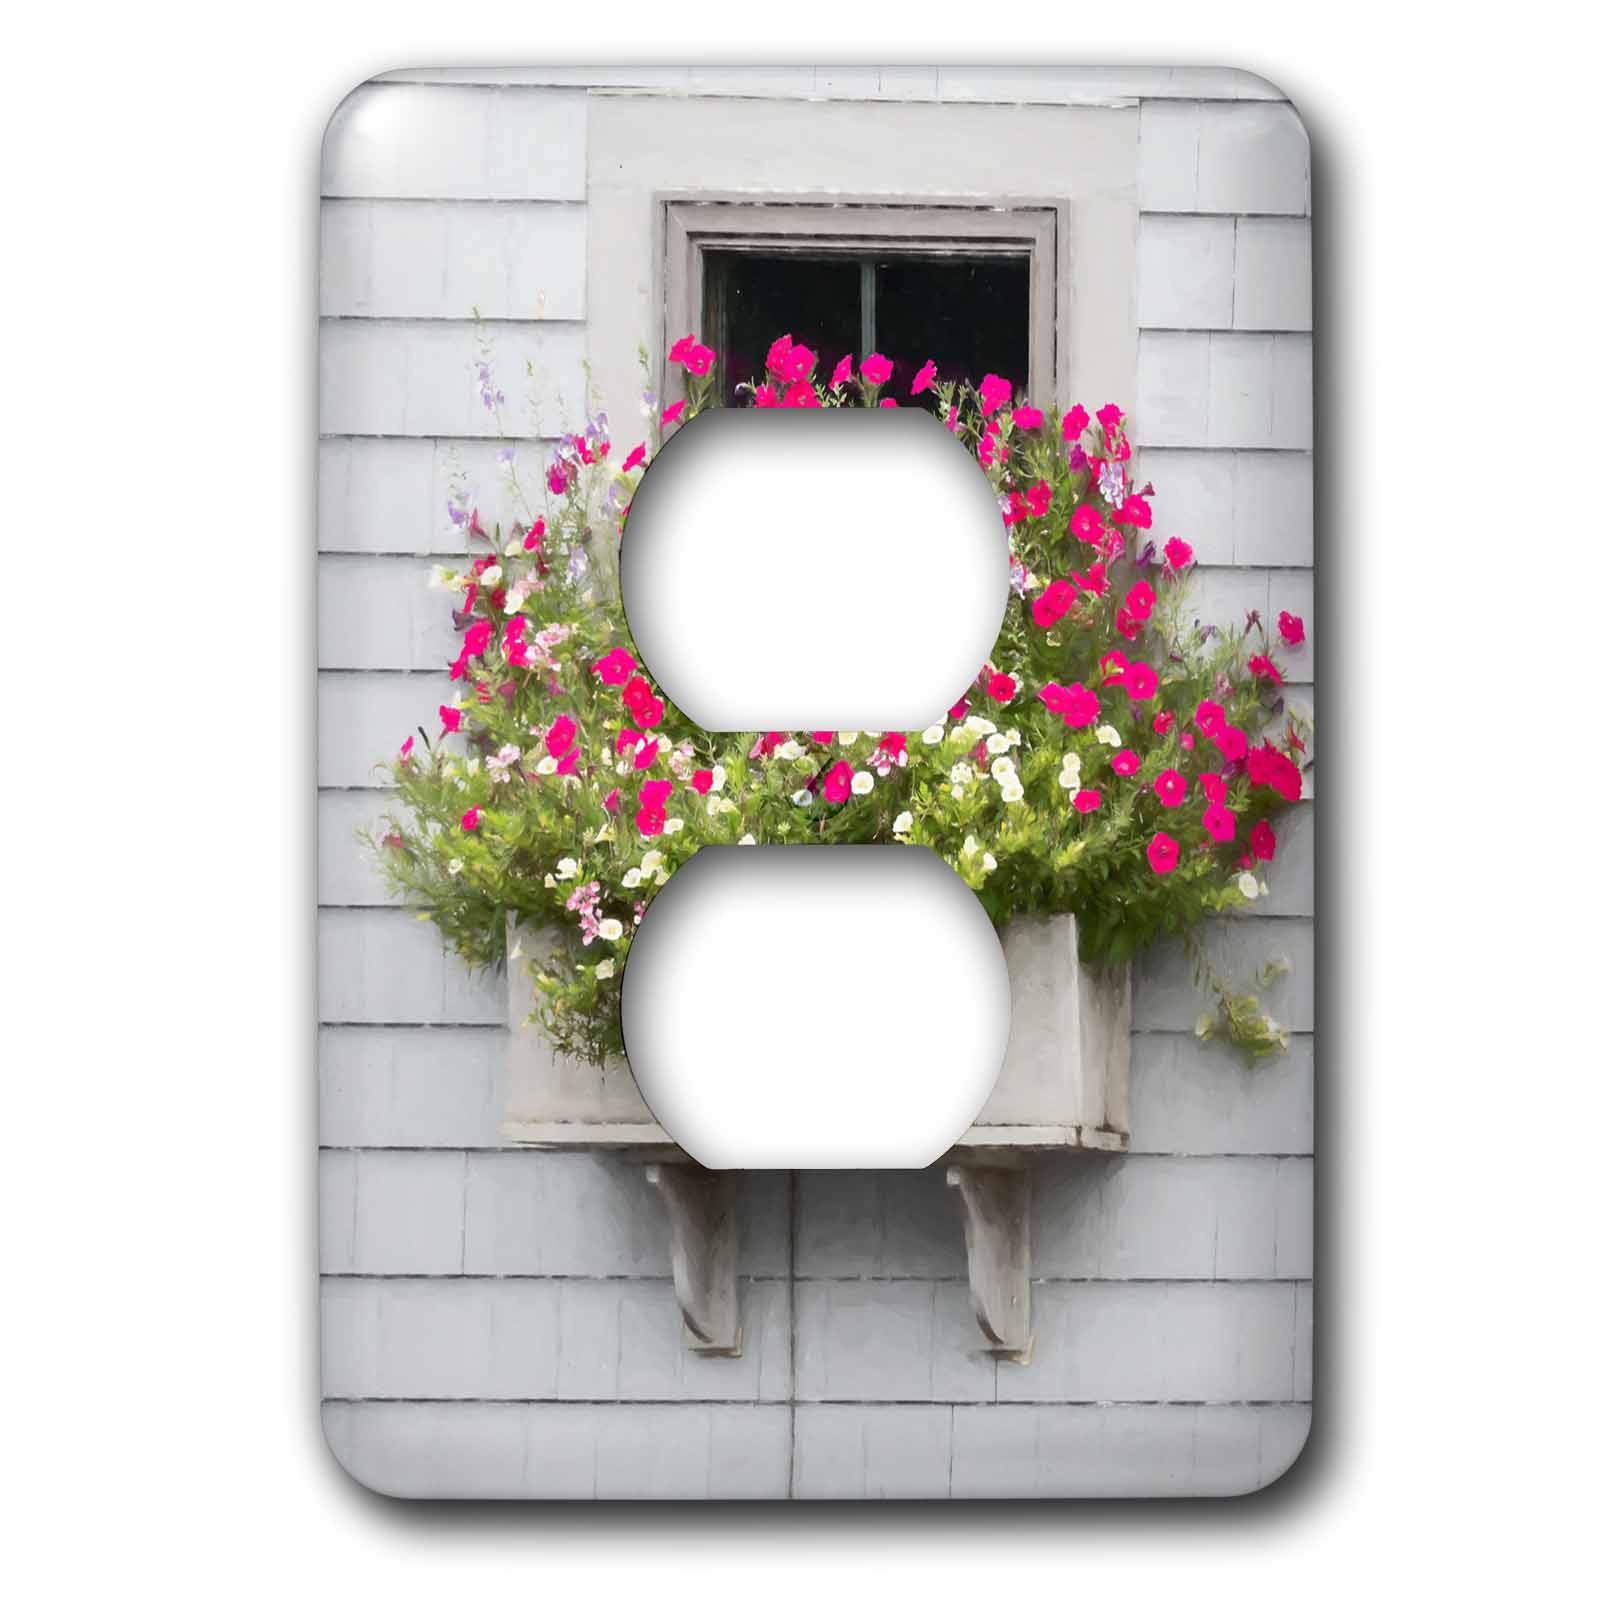 3dRose Roni Chastain Photography - Pink fowers by the window - Light Switch Covers - 2 plug outlet cover (lsp_295334_6)